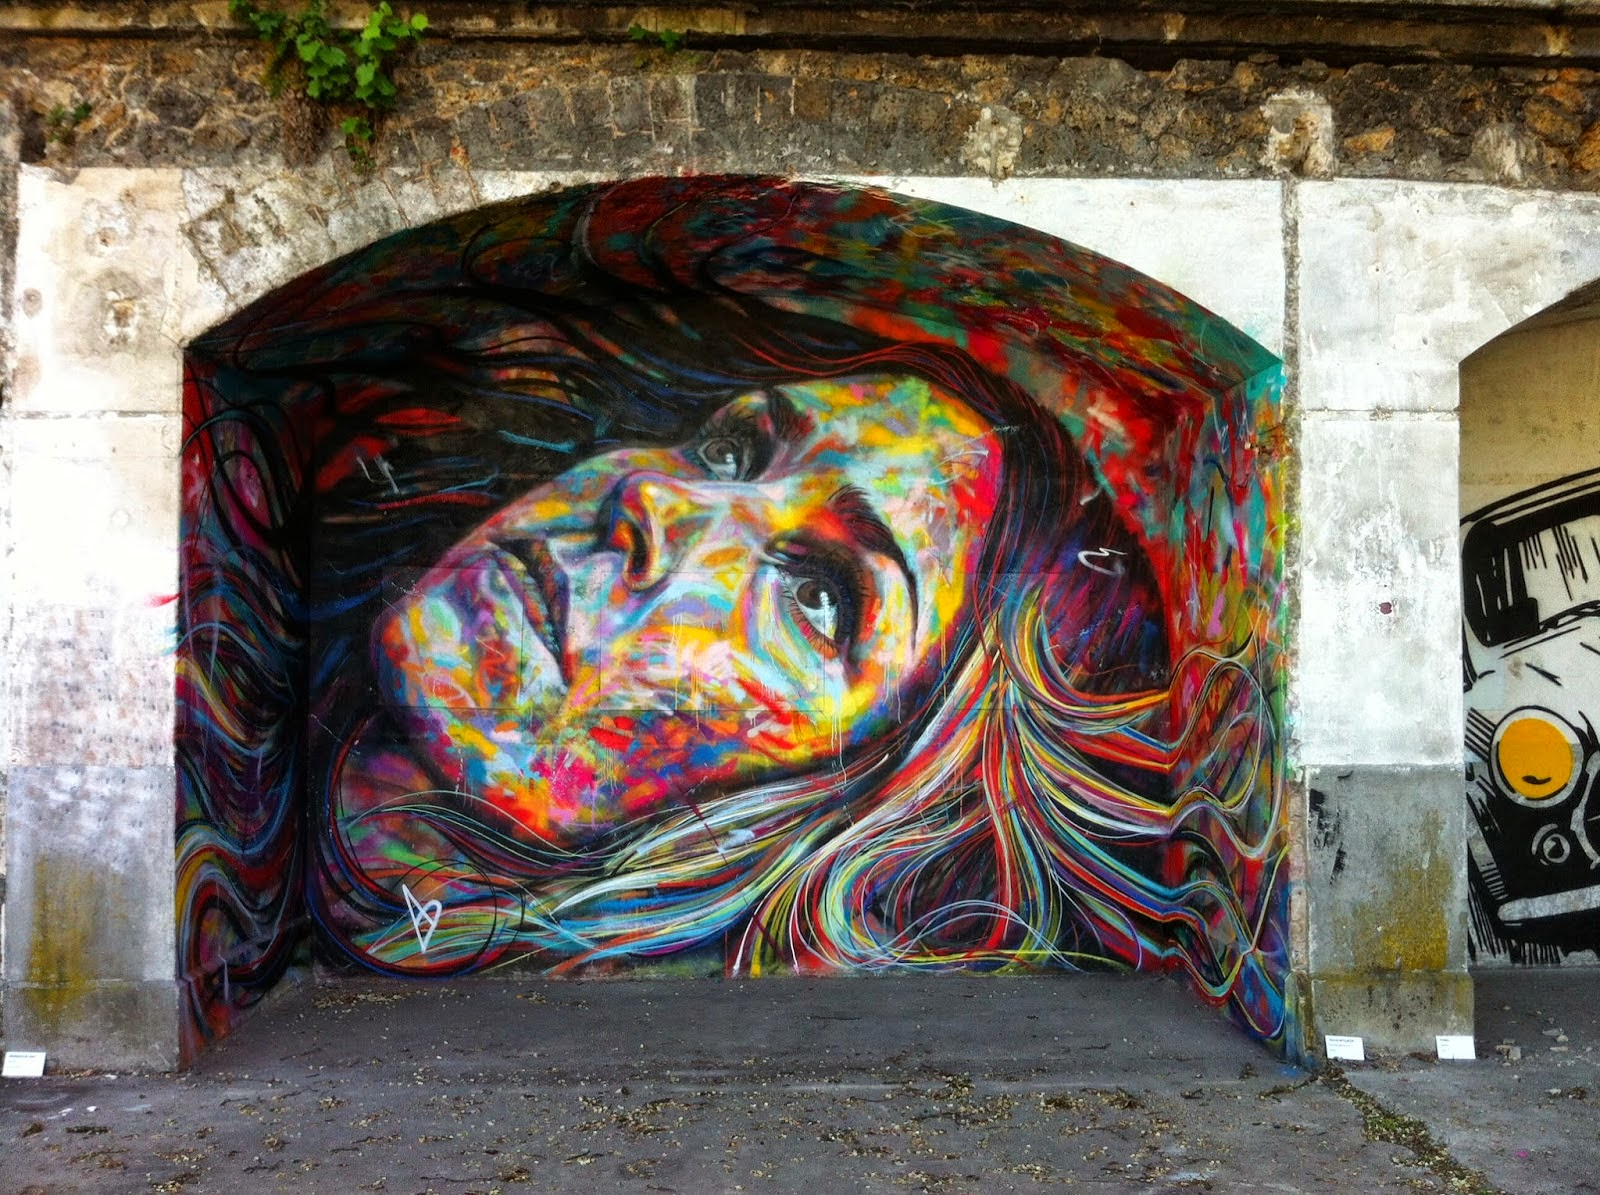 After Miami and the successful opening of his solo exhibition (covered), David Walker is back in Europe where he attended the In Situ Street Art Festival in the suburbs of Paris.